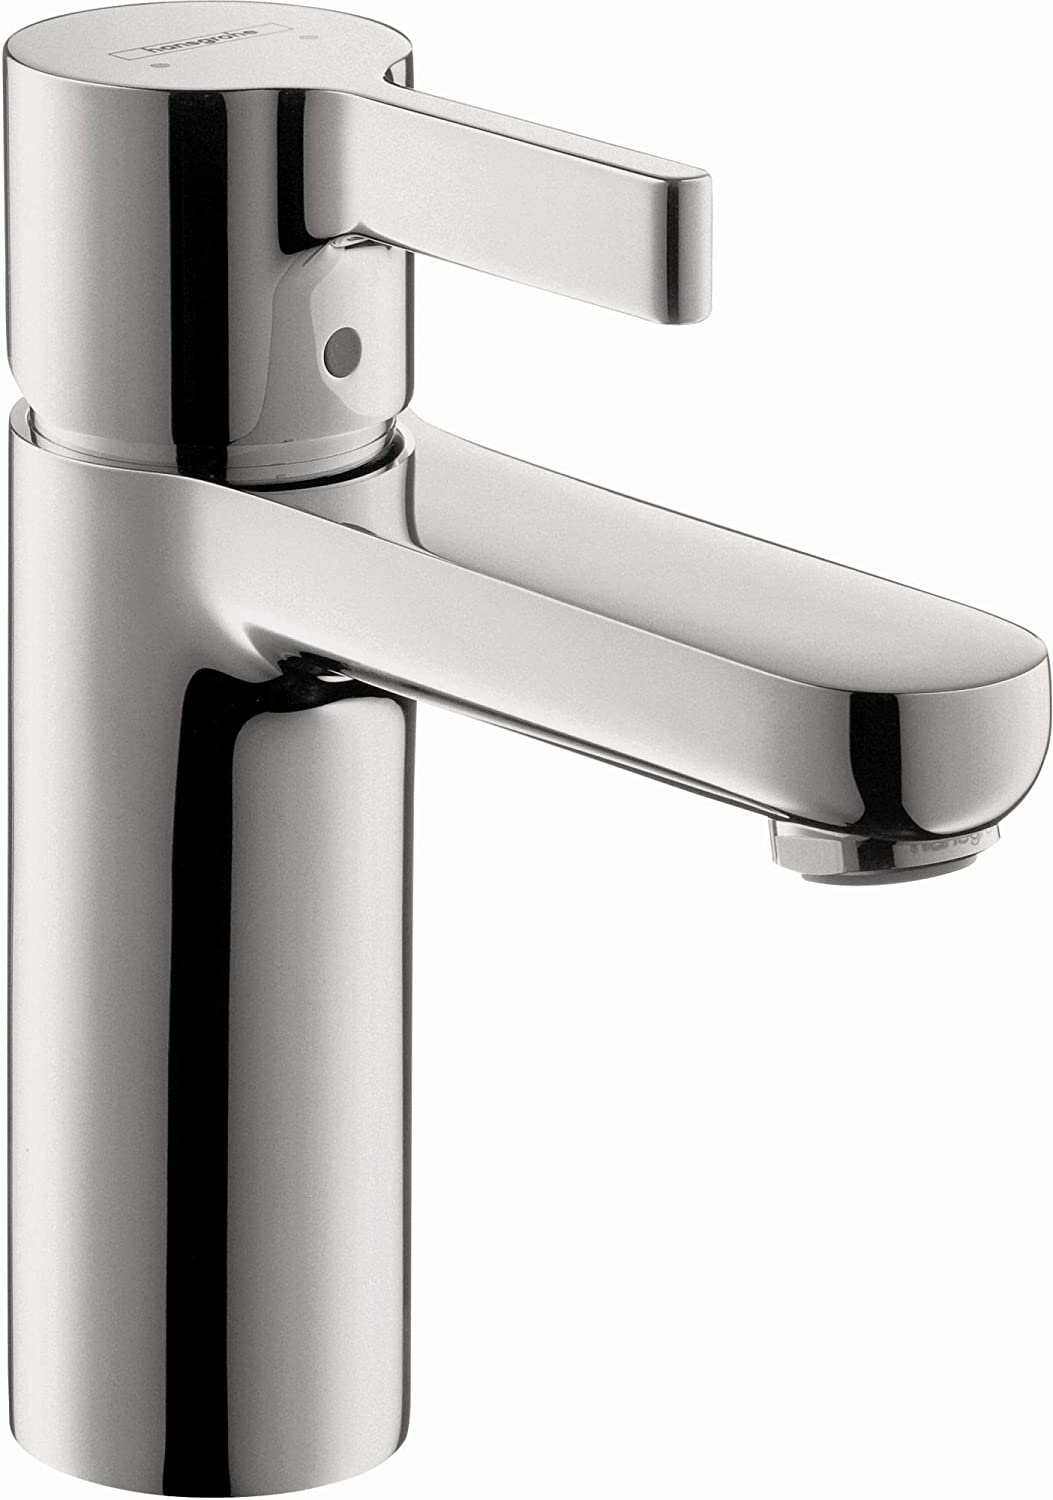 Hansgrohe Metris S Modern Low Flow Water Saving 1 Handle 1 6 Inch Tall Bathroom Sink Faucet In Chrome 31060001 Touch On Bathroom Sink Faucets Amazon Com